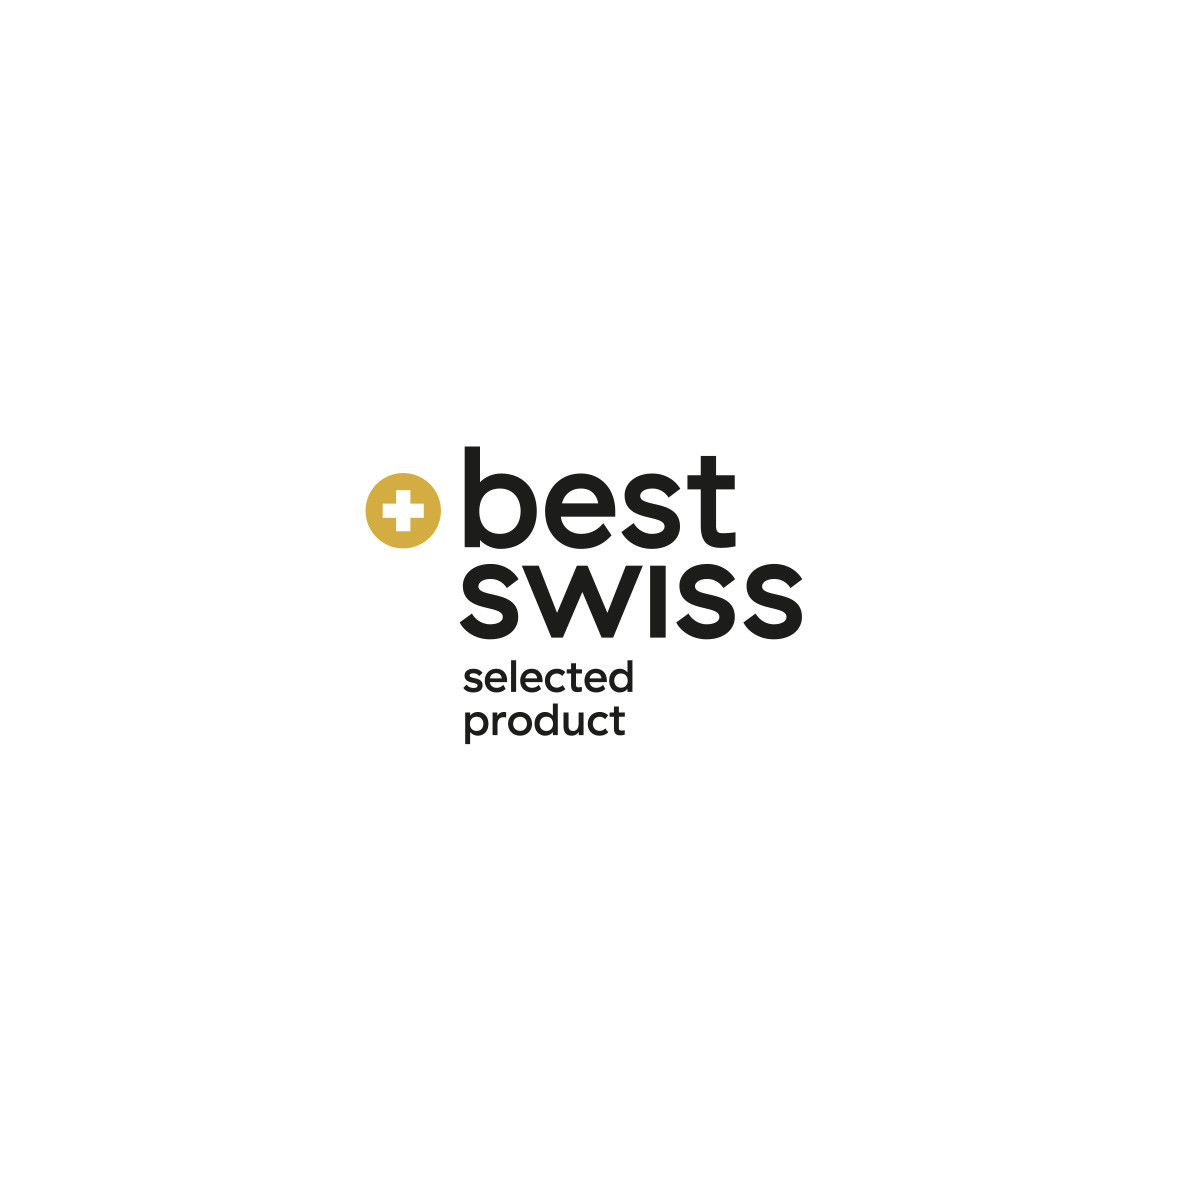 swiss-made-seleted-product-bestswiss